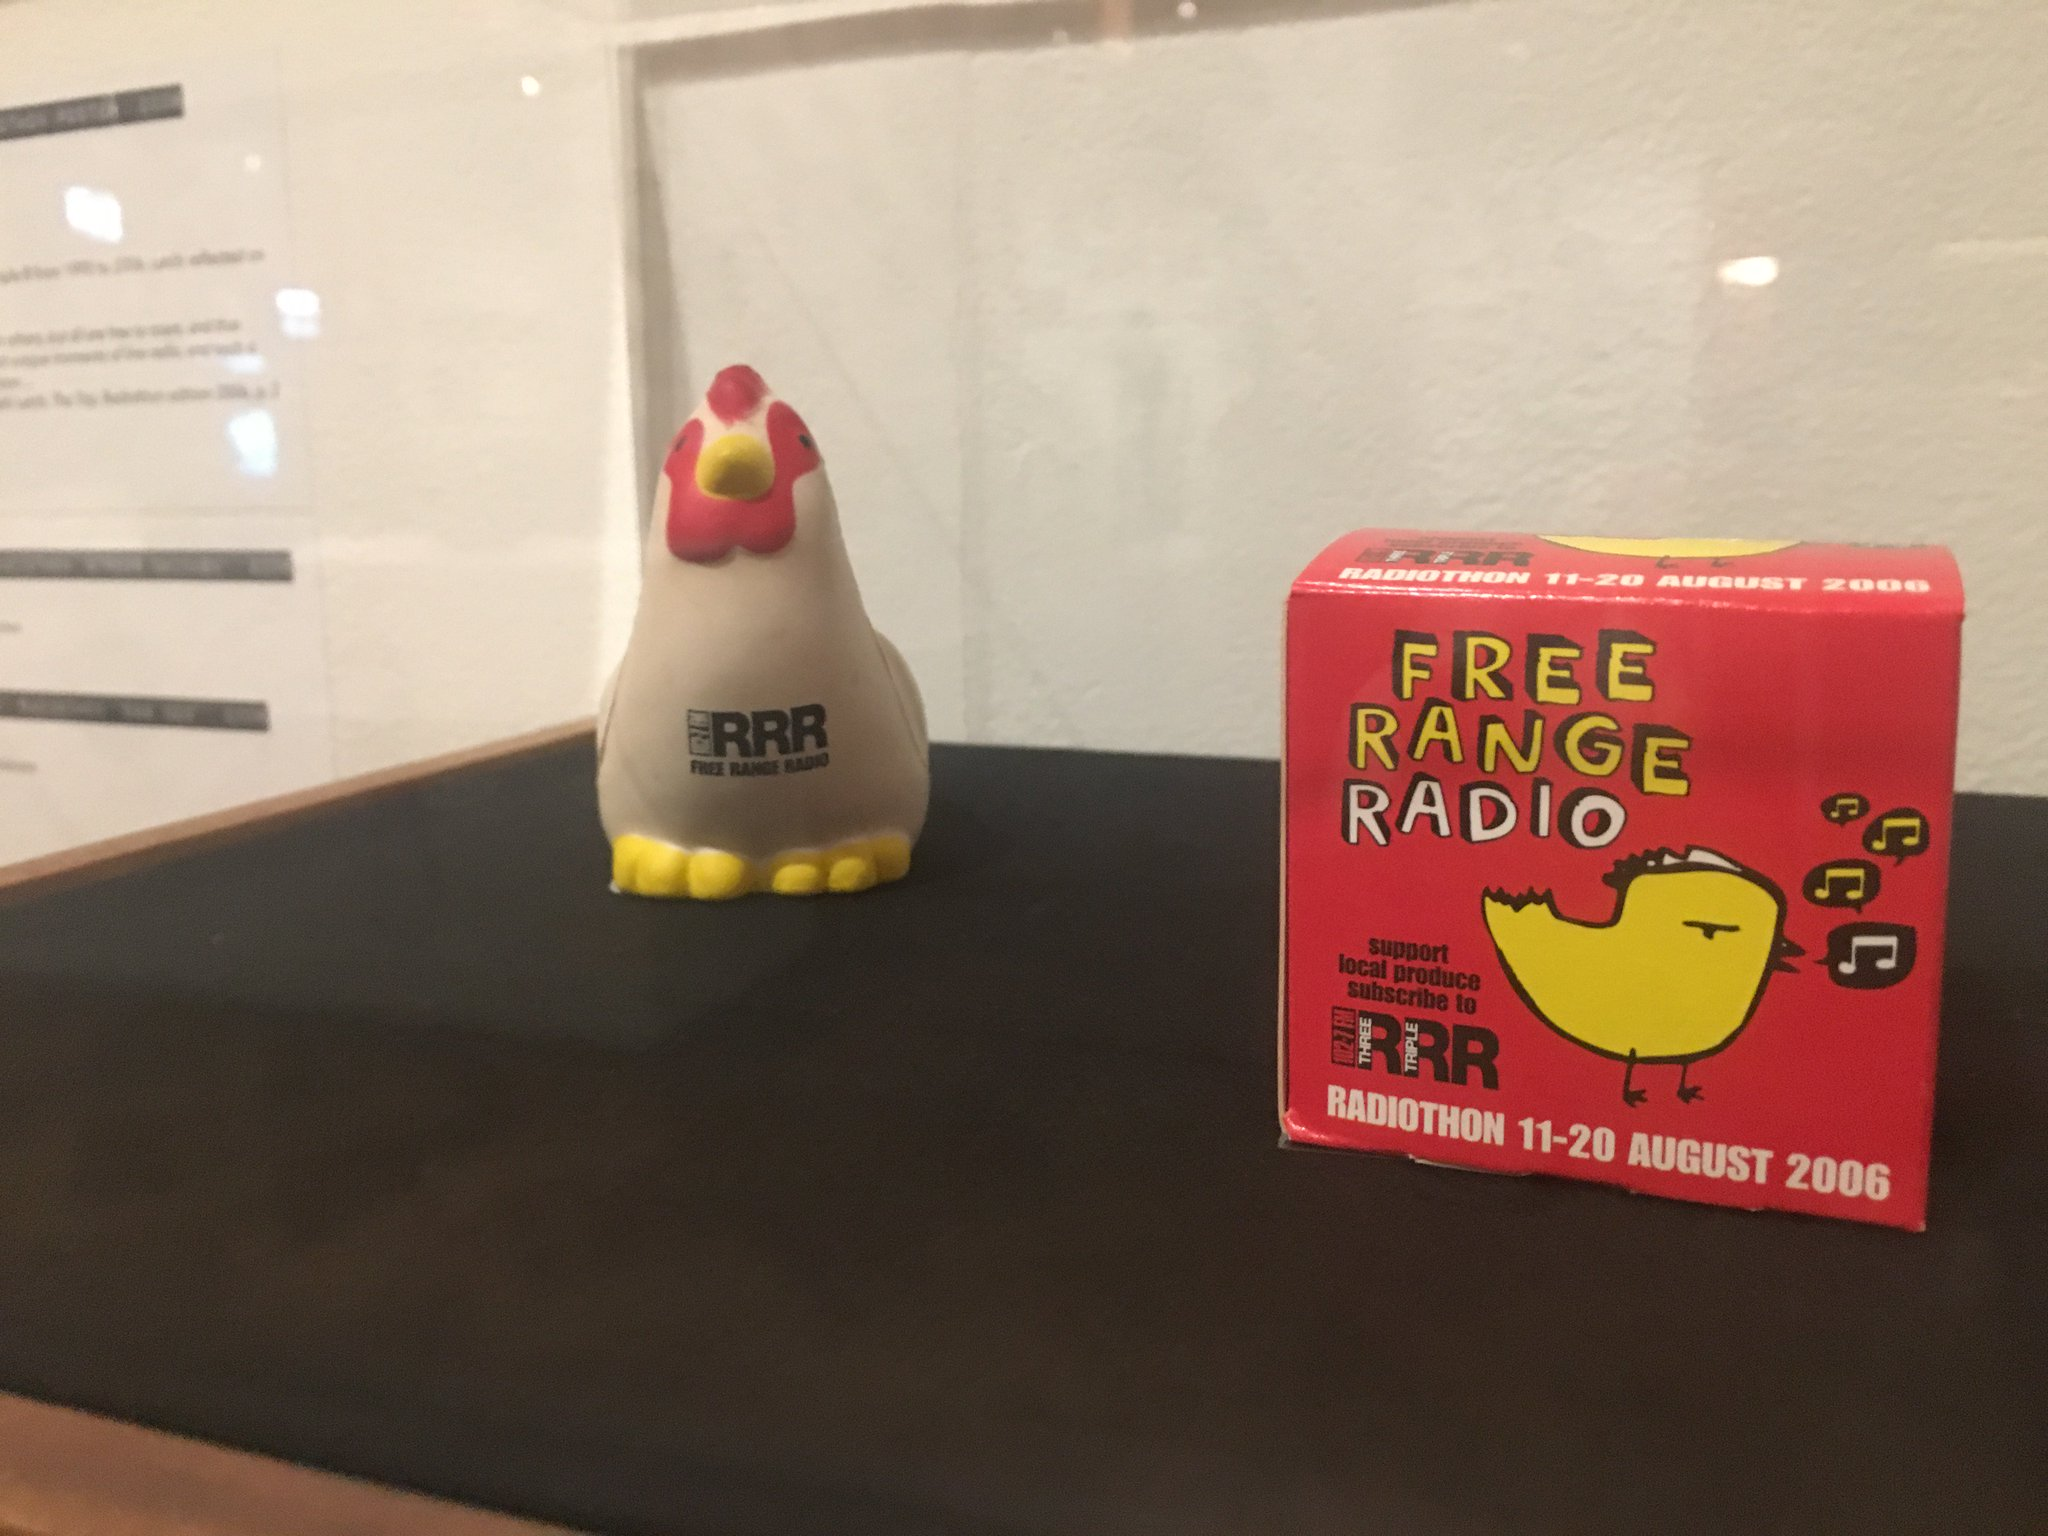 Stressed? The 'Free Range Radio' Radiothon stress chicken is just the thing to help. #WorldRadioDay https://t.co/JZT695IByZ